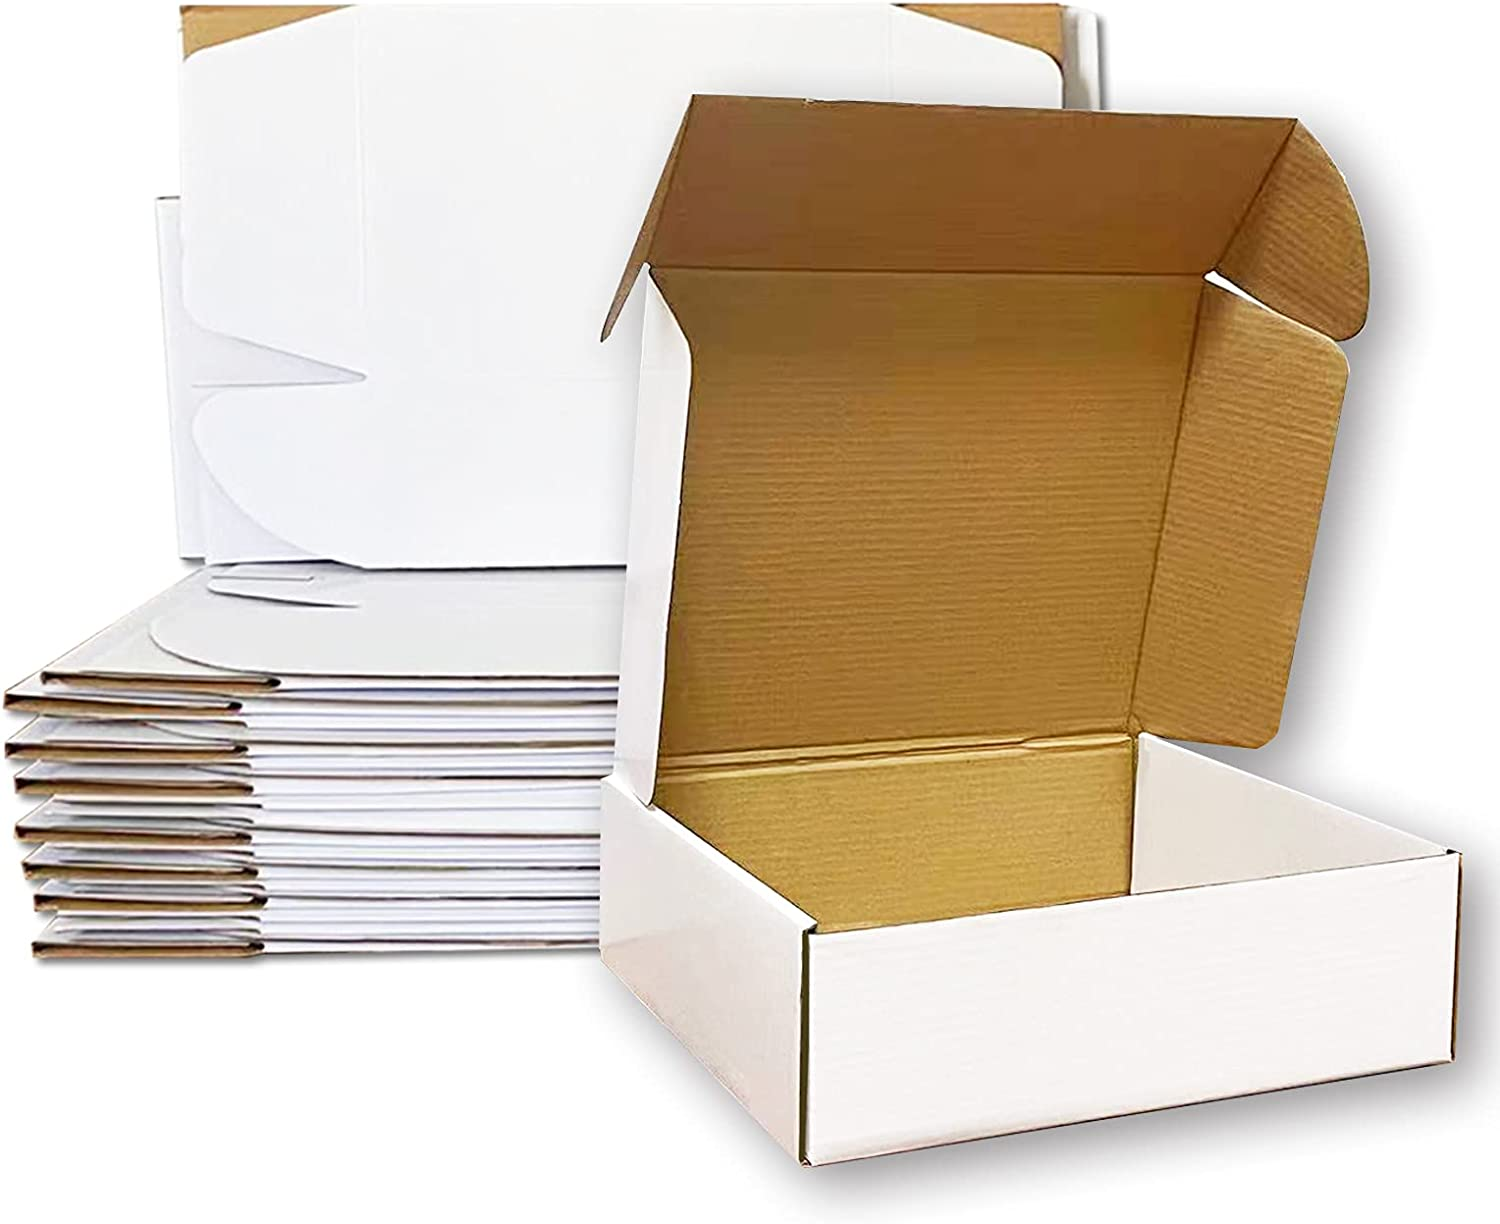 Superior Sales ZSPENG Shipping Boxes for Small Business 28 11x9x2 inches W Pack